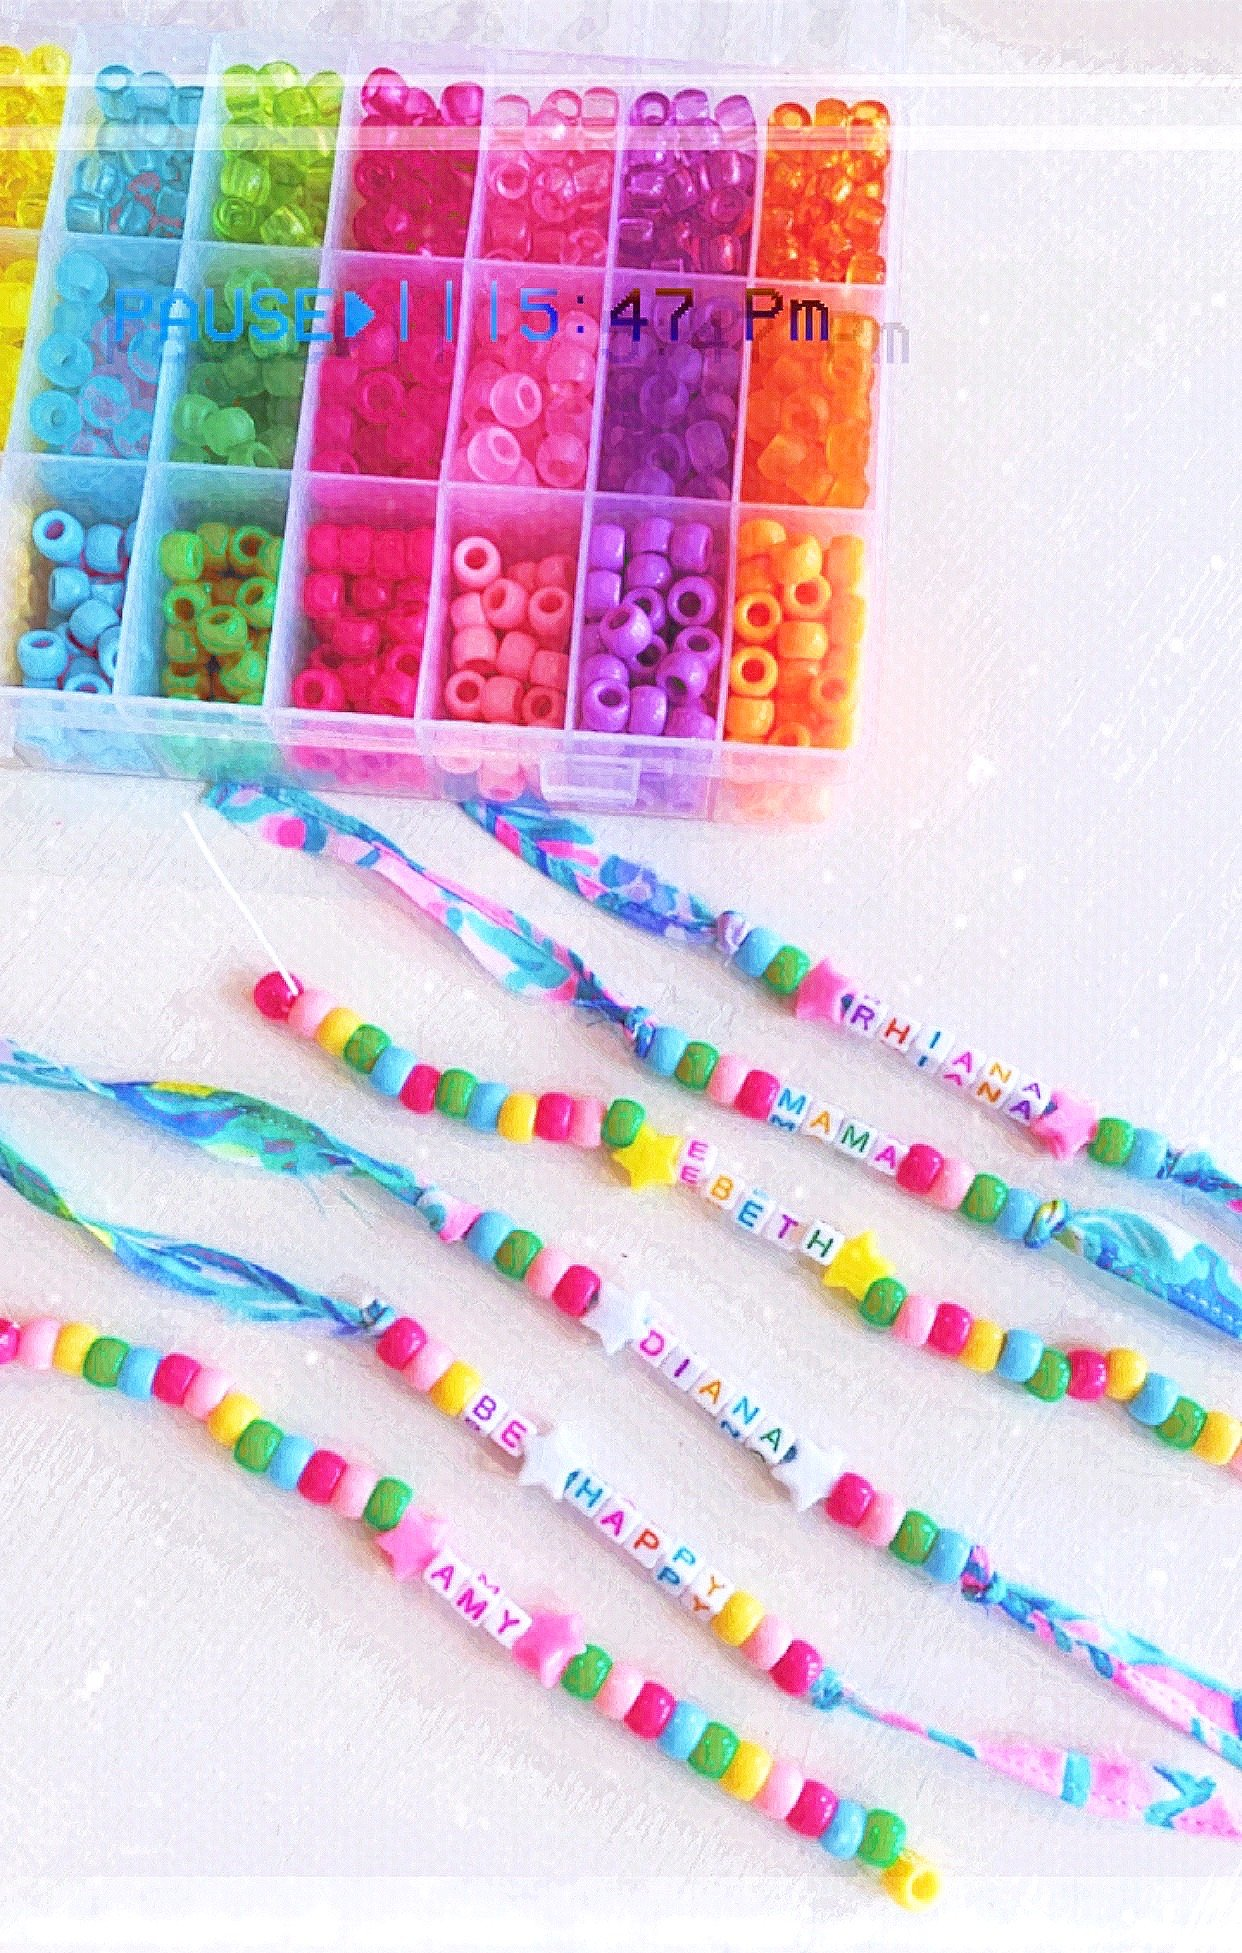 Making colorful beaded bracelets supplies